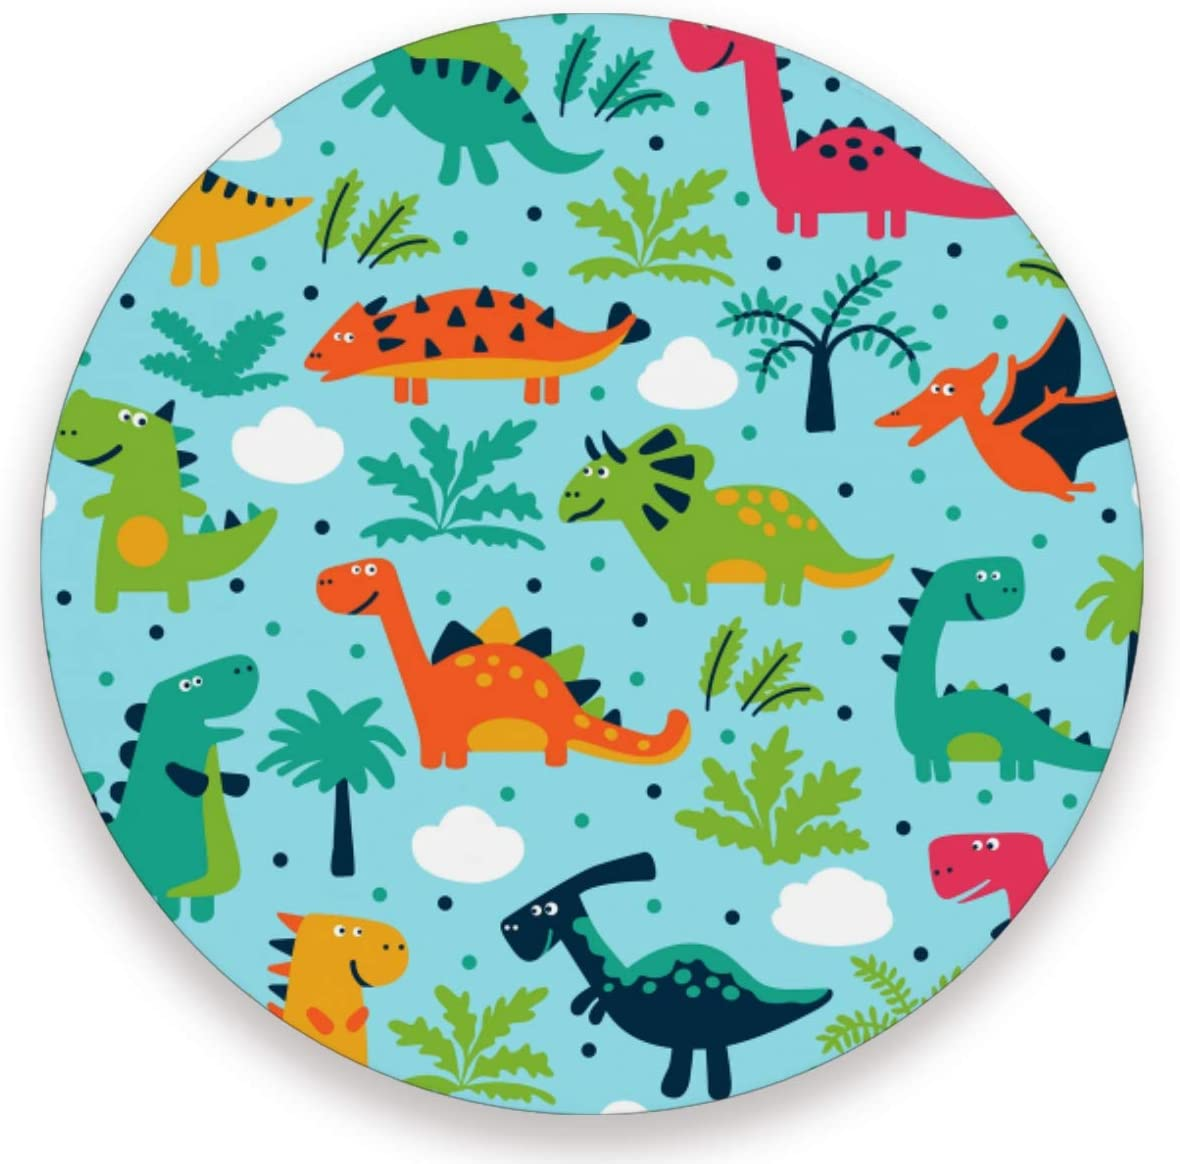 Olinyou Funny Dinosaurs Clouds And Trees Coasters for Drinks Set of 4 Absorbent Ceramic Stone Round Coaster with Cork Base